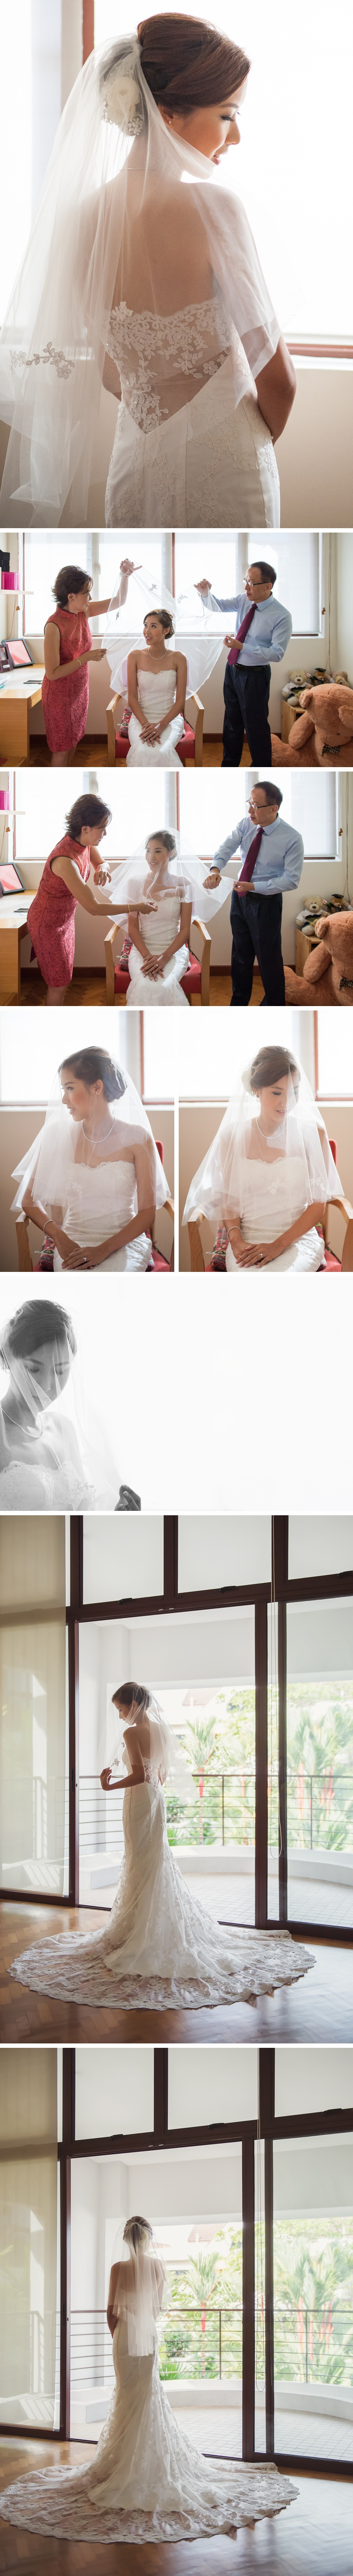 James&Yujia_Wedding_Day_Alvinadeline_Photography03